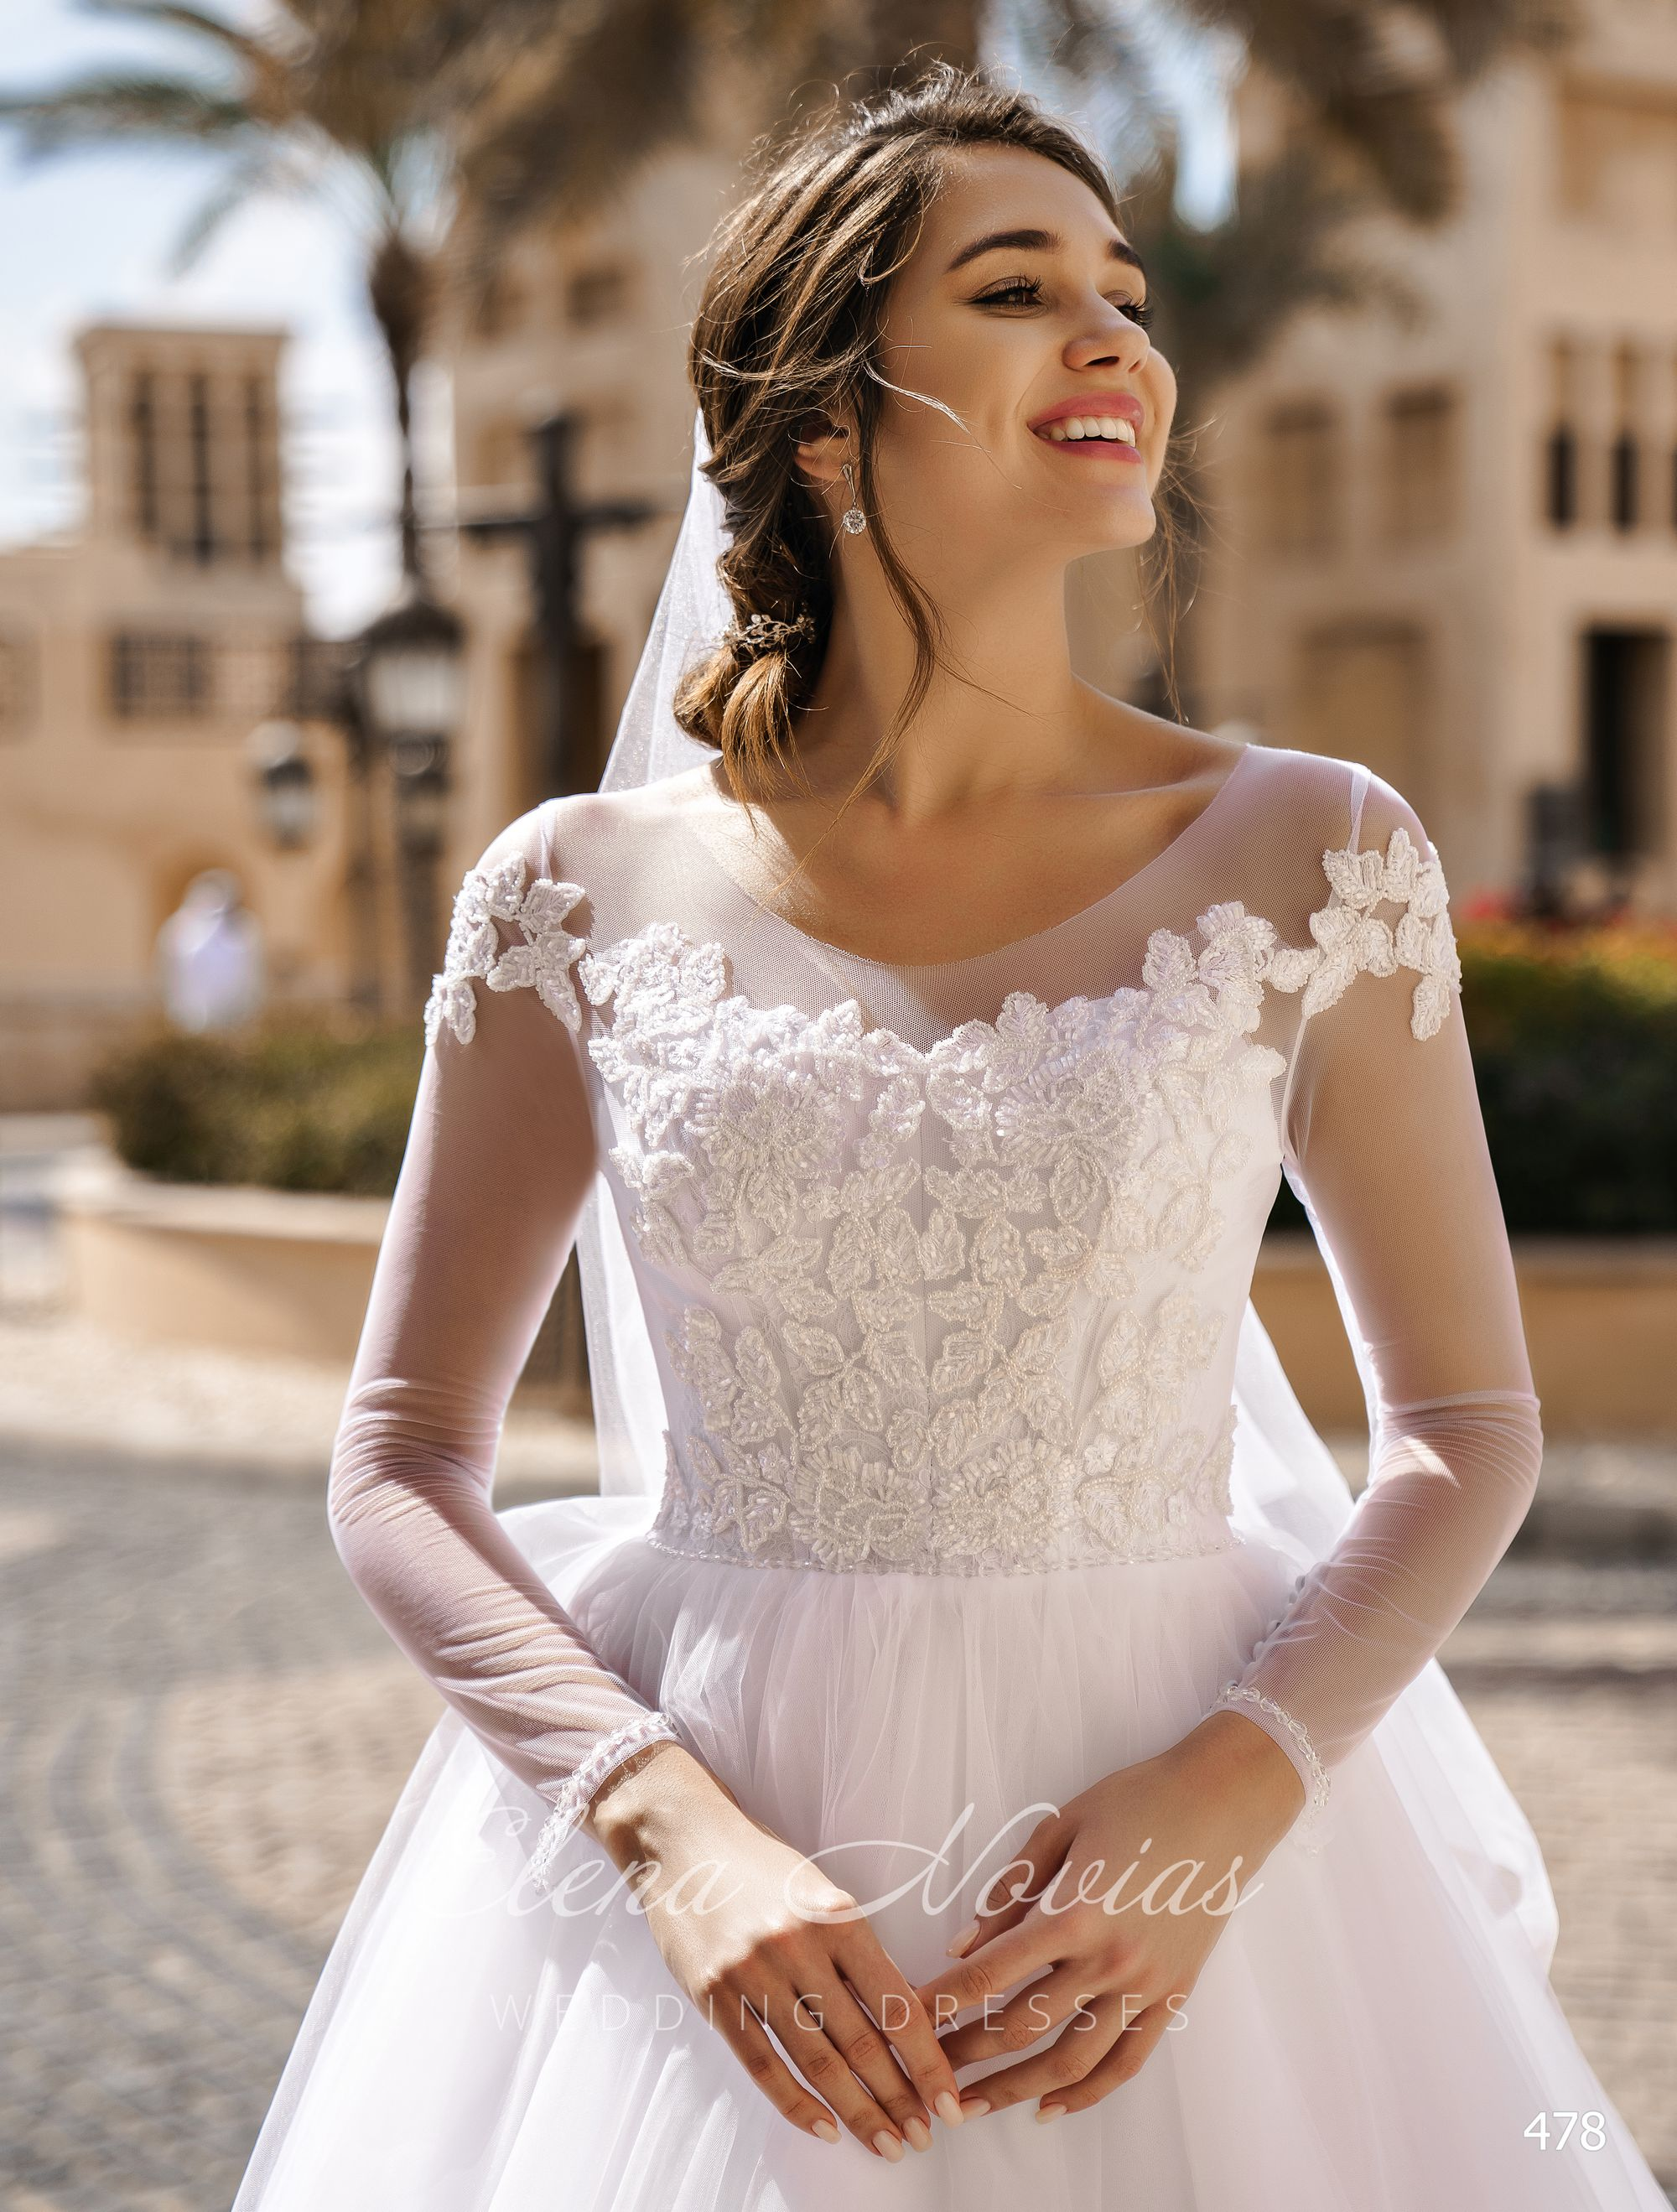 Wedding dresses 478 1